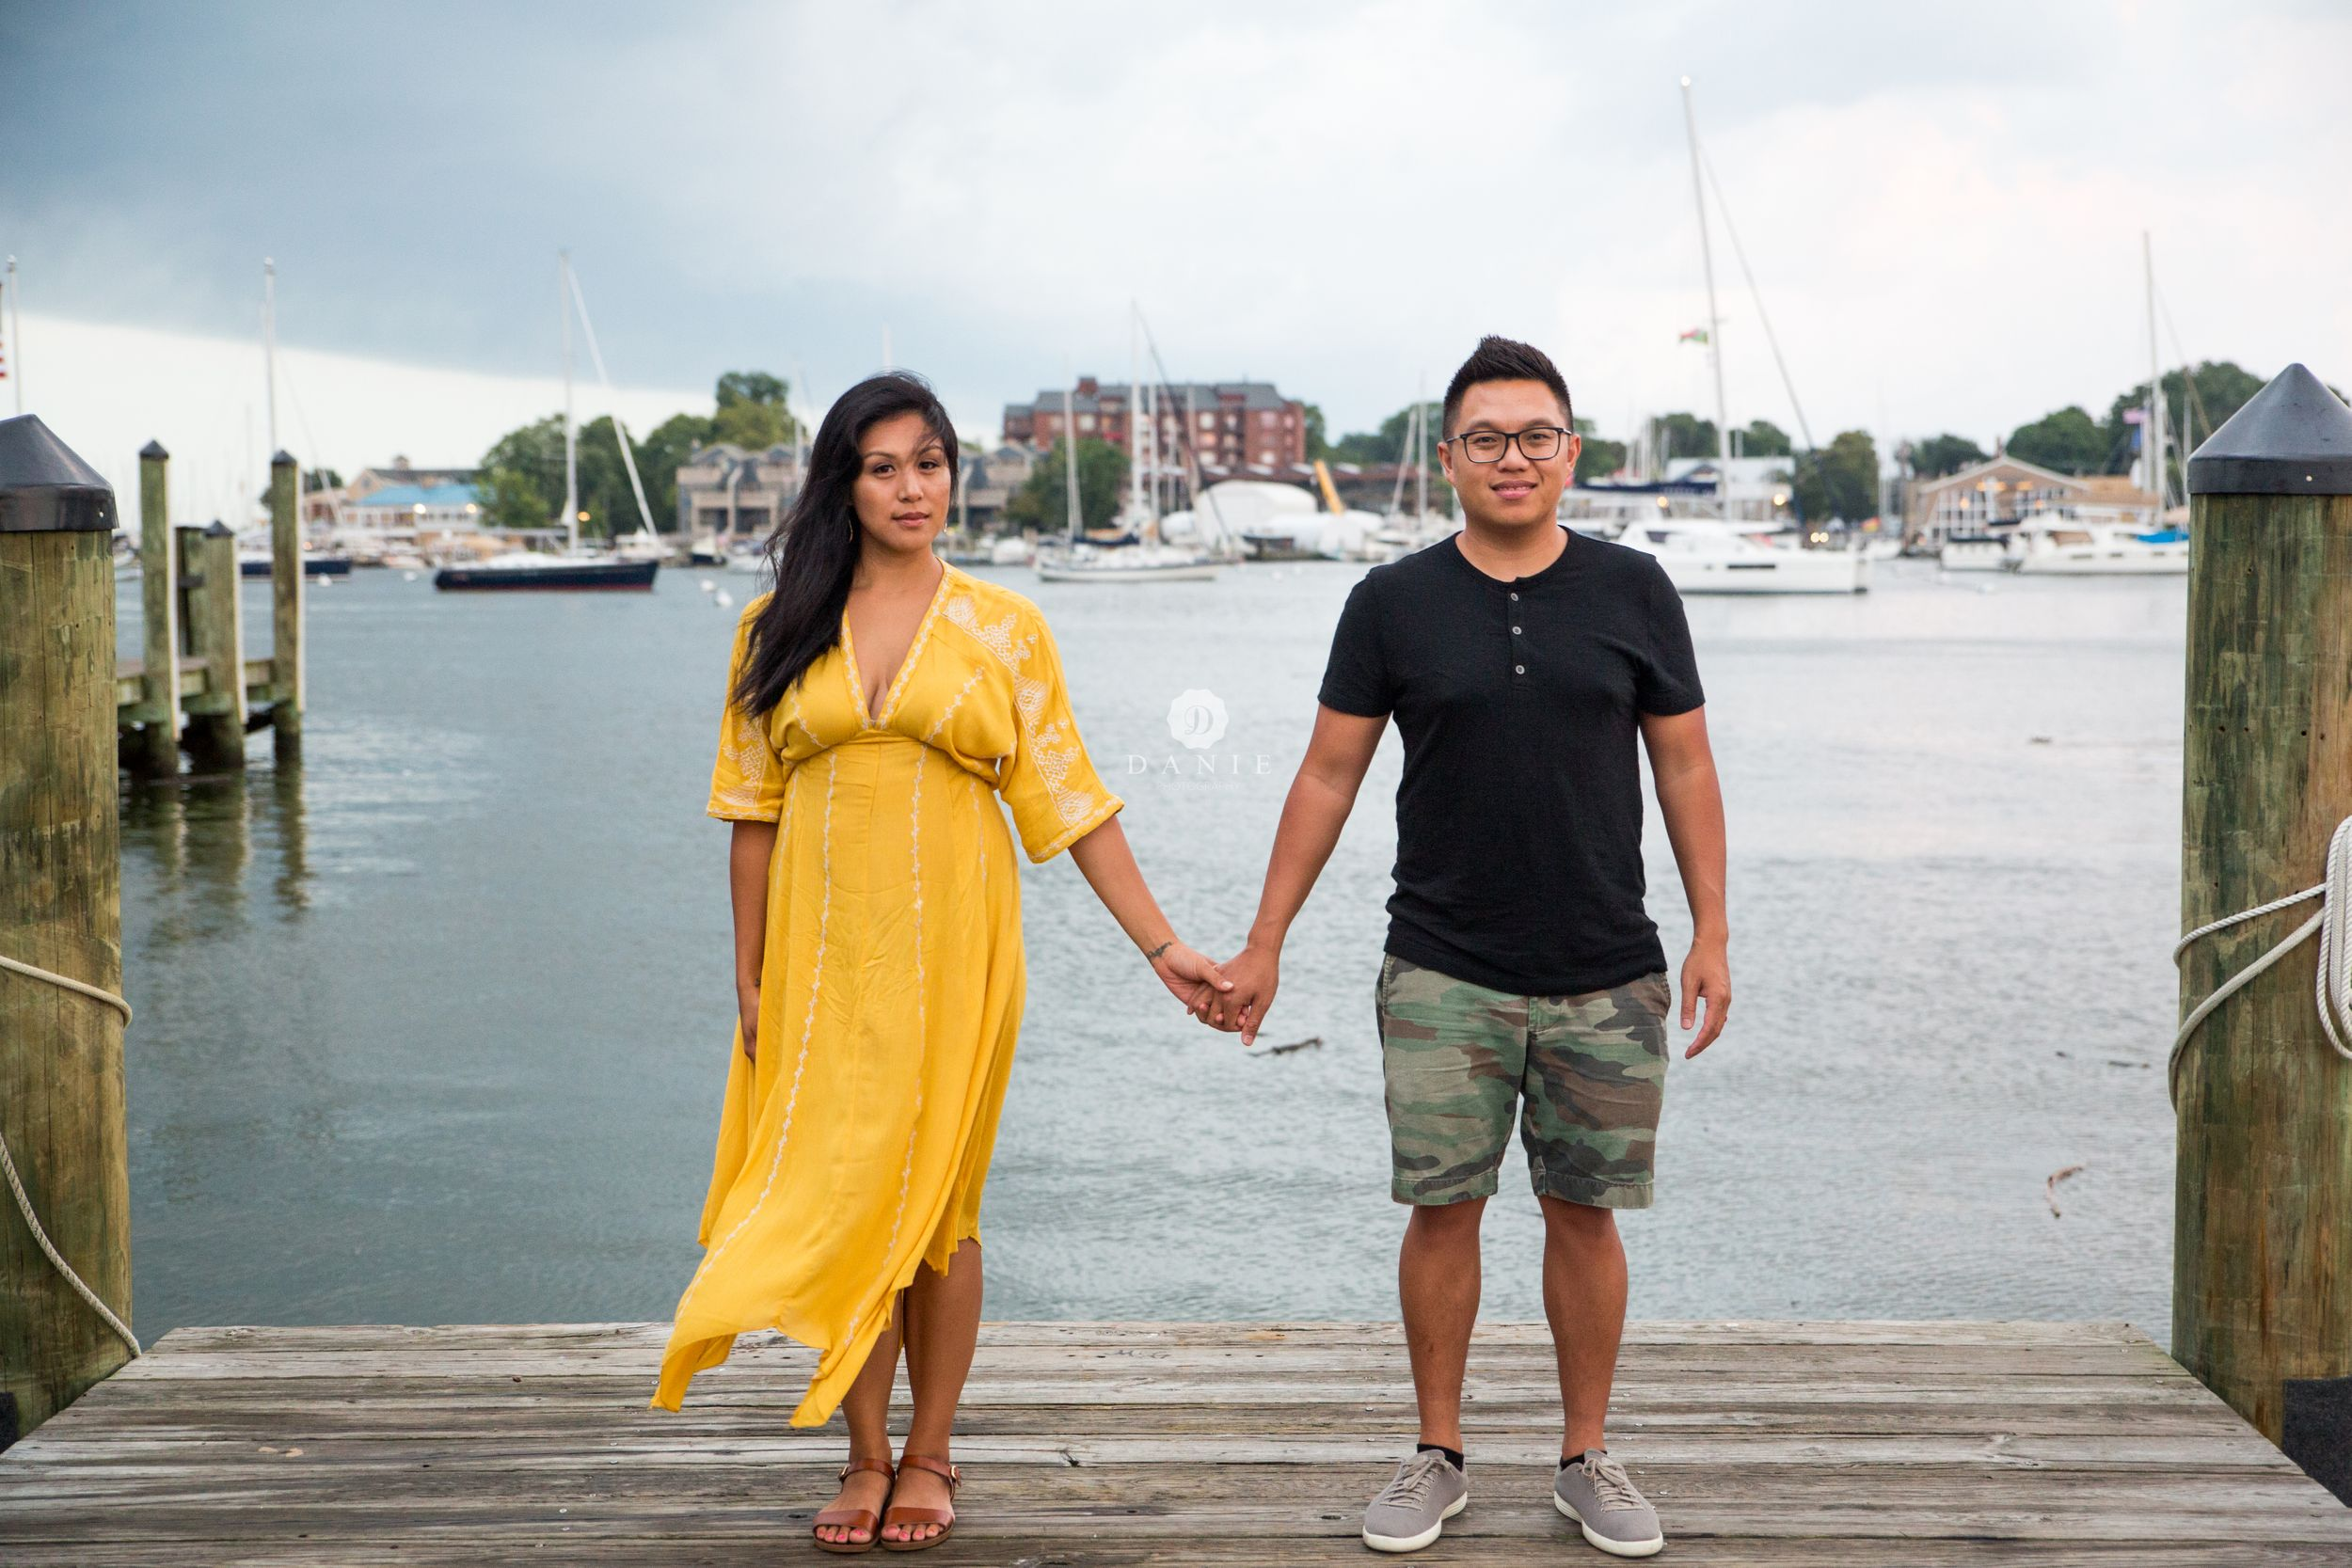 Downtown Annapolis City Dock Couple | Engagement | DANIE Photography